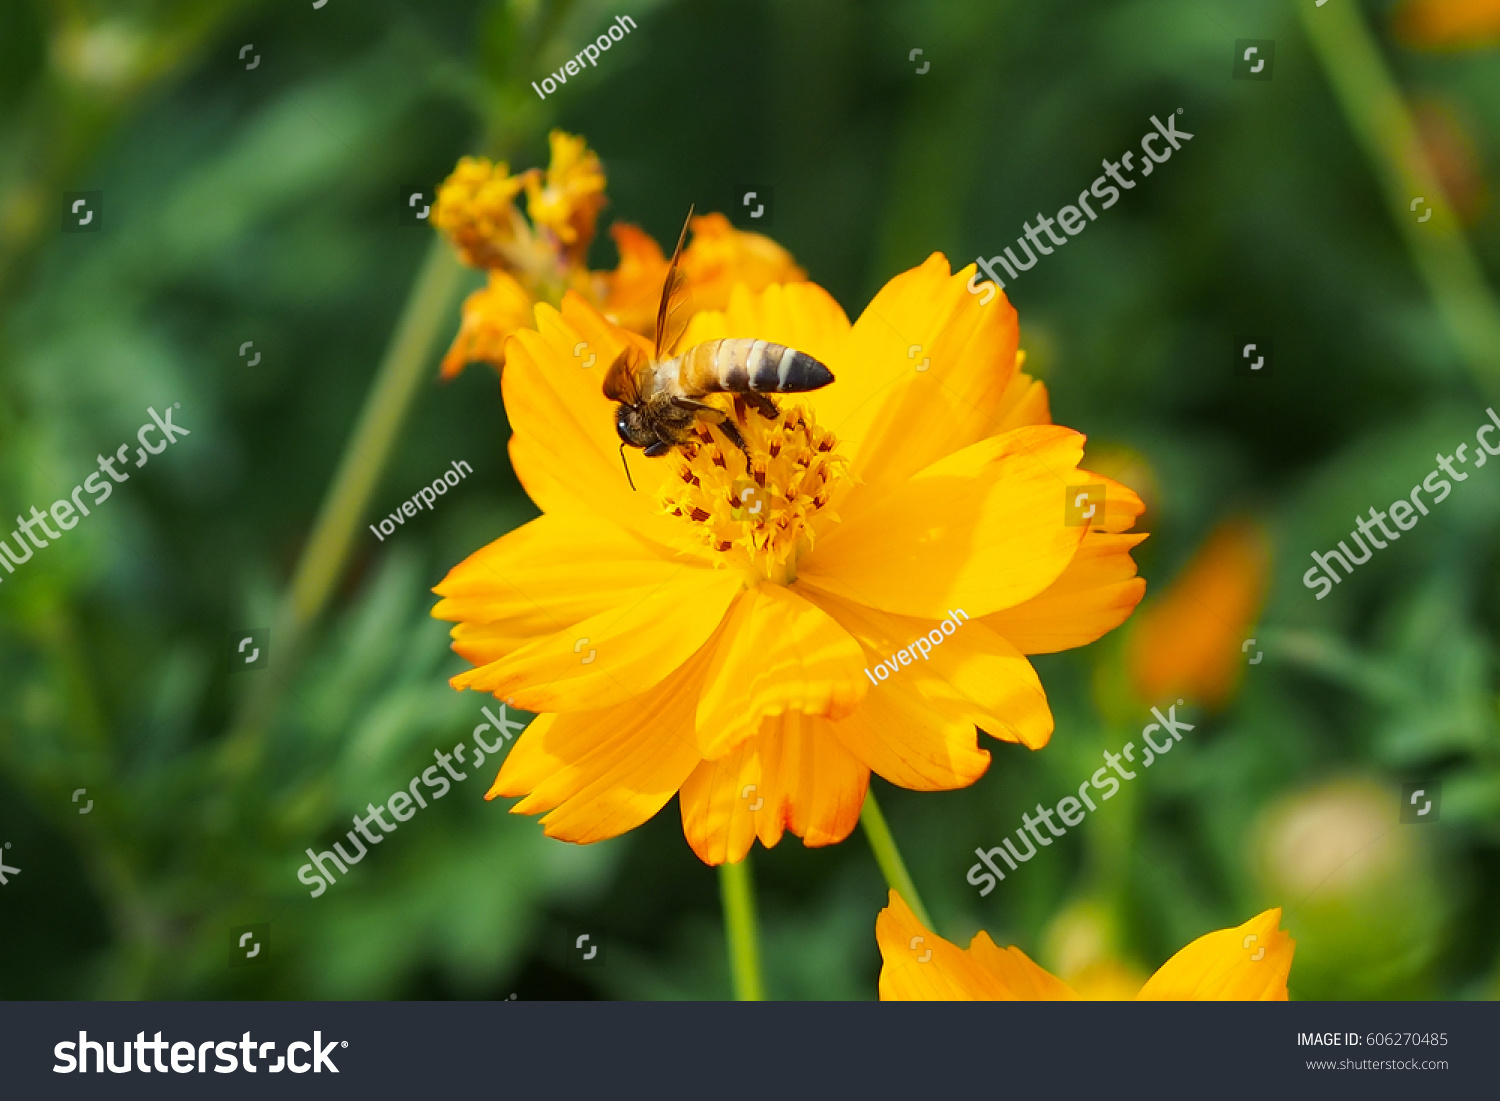 Close Up Of Yellow Orange Cosmos Flower With A Bee At The Center